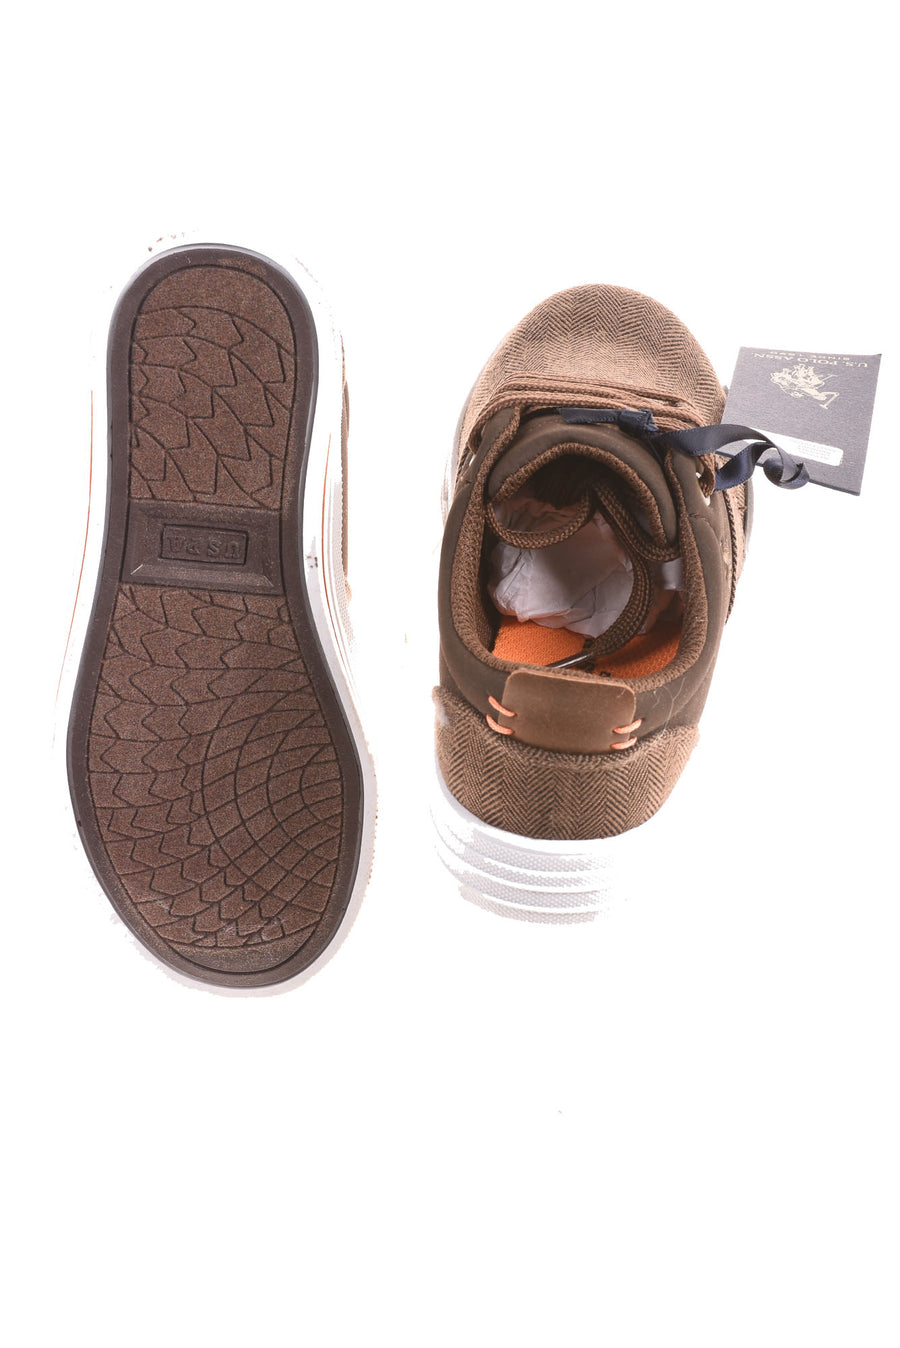 NEW U.S. Polo Assn. Boy's Shoes 11 Brown